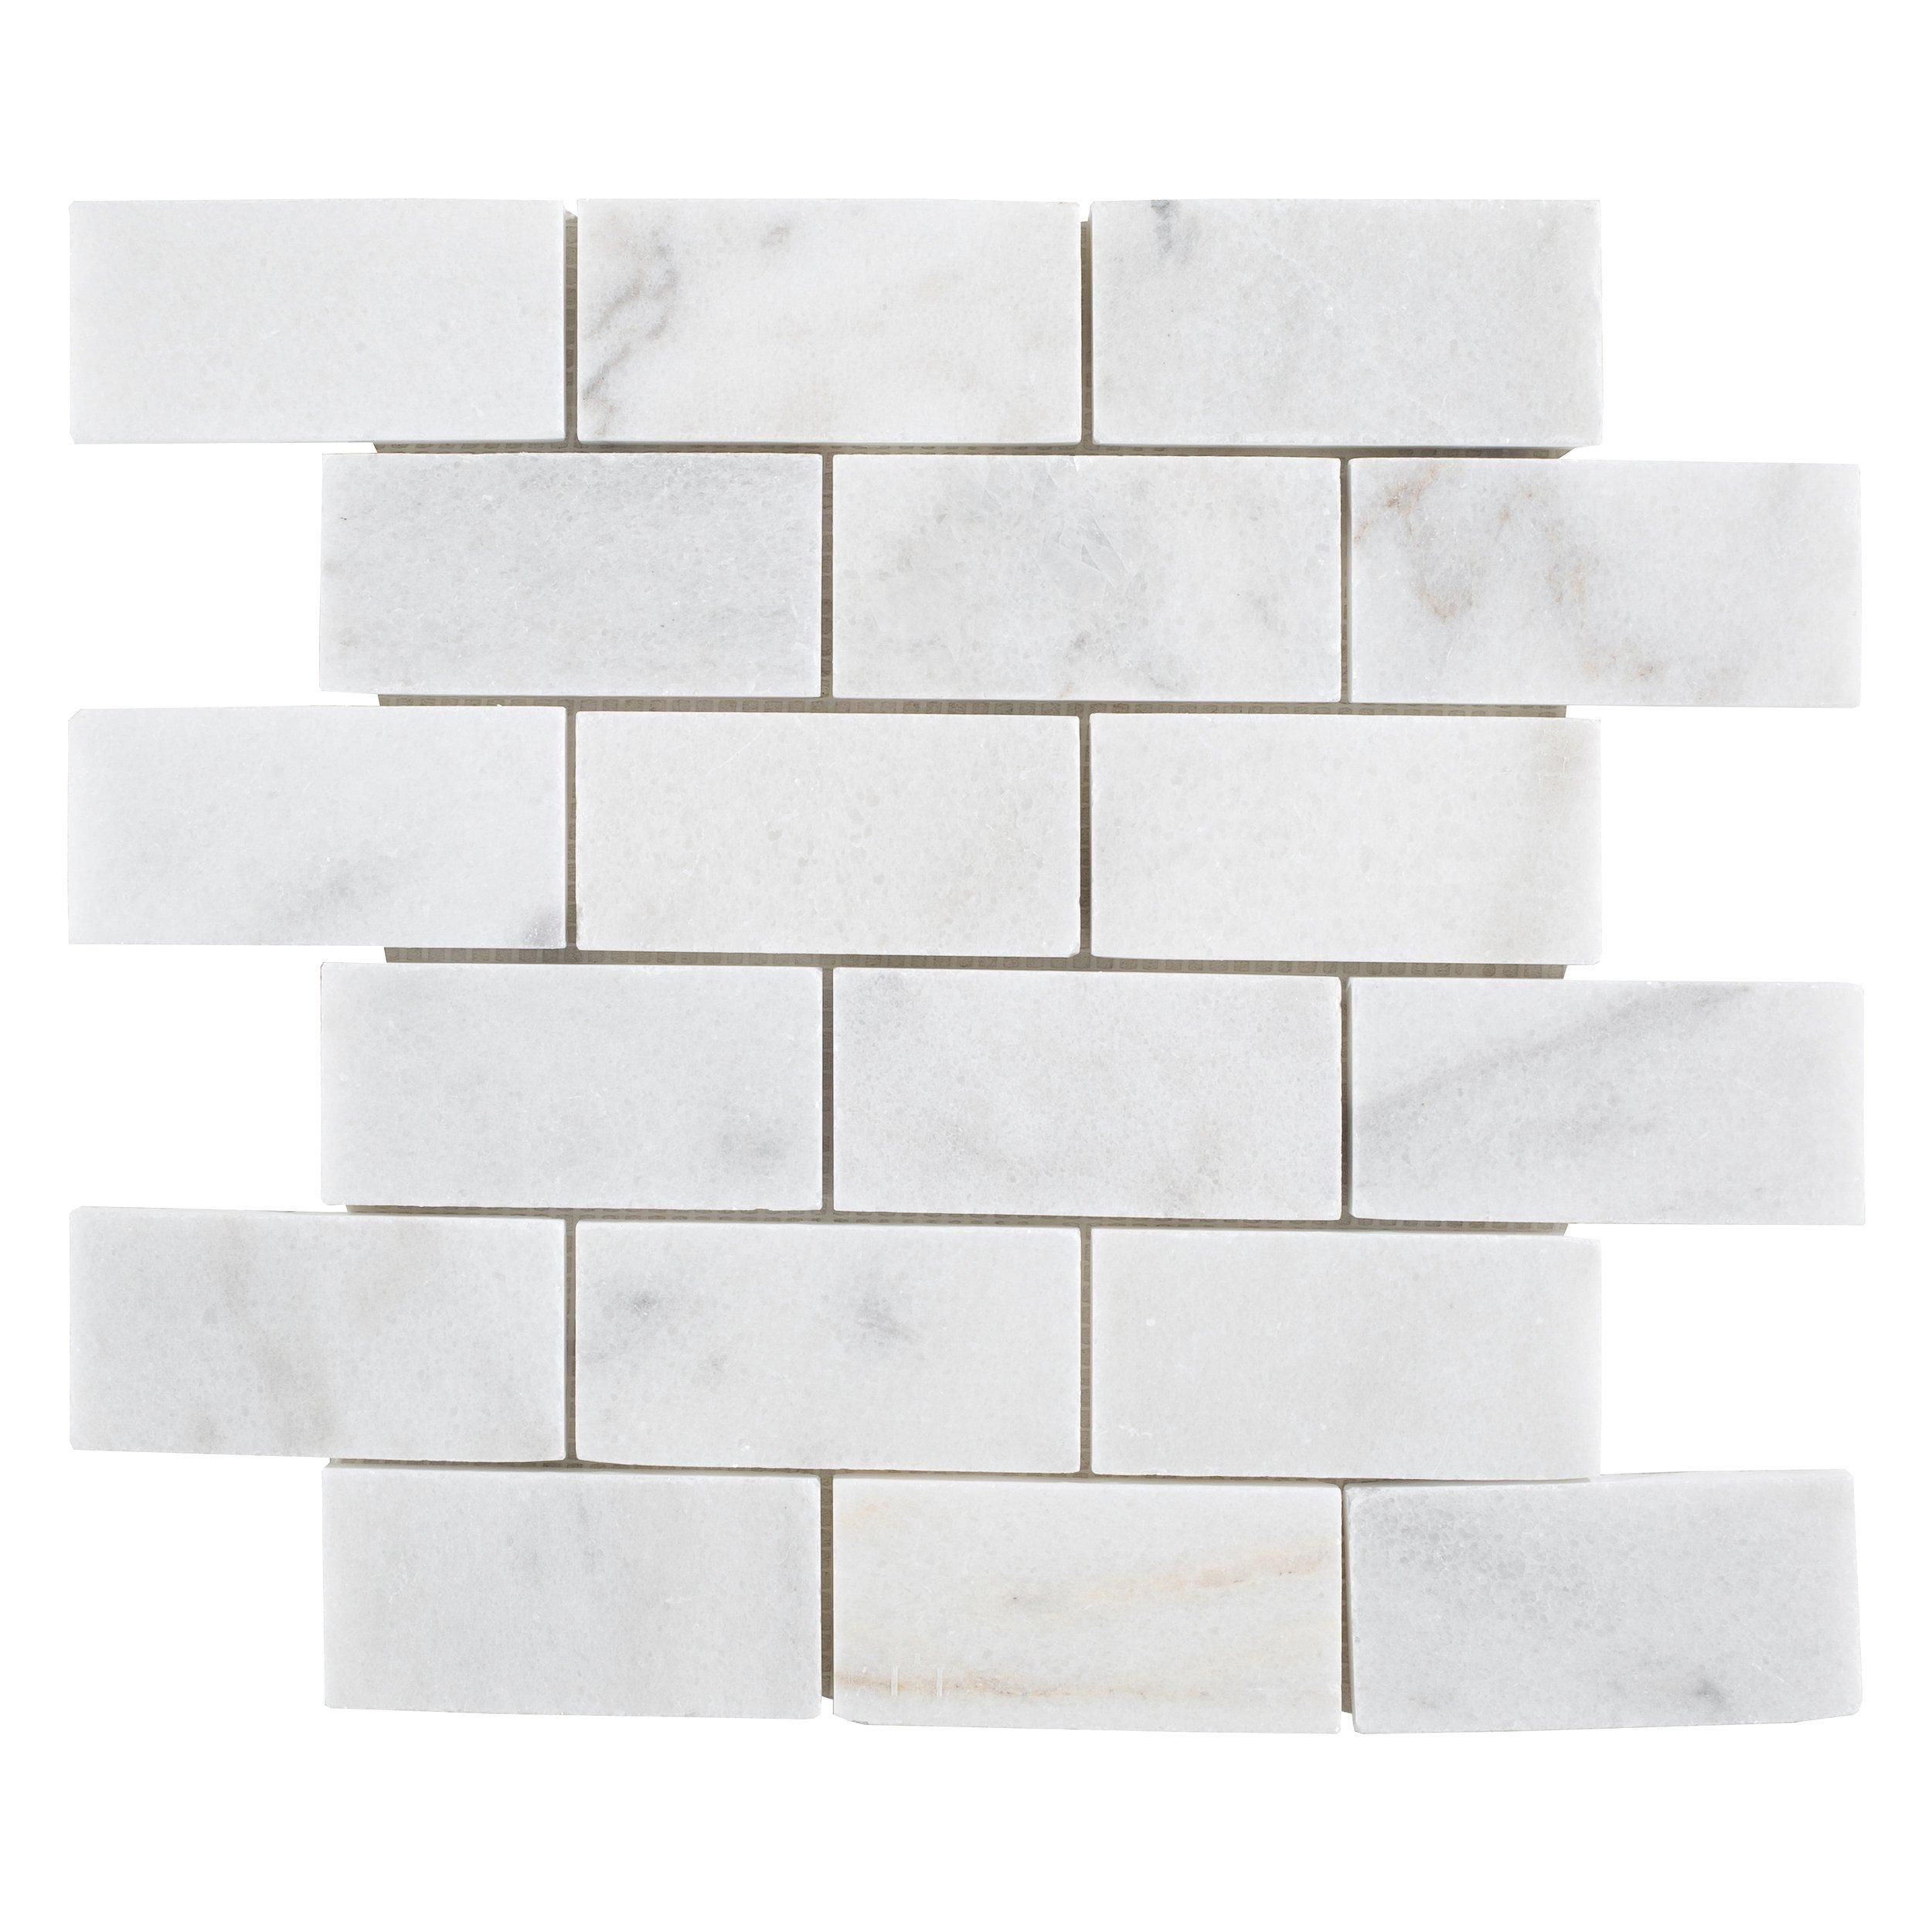 Regal White Honed Marble Mosaic Floor Decor In 2020 Honed Marble Marble Mosaic Honed Marble Tiles